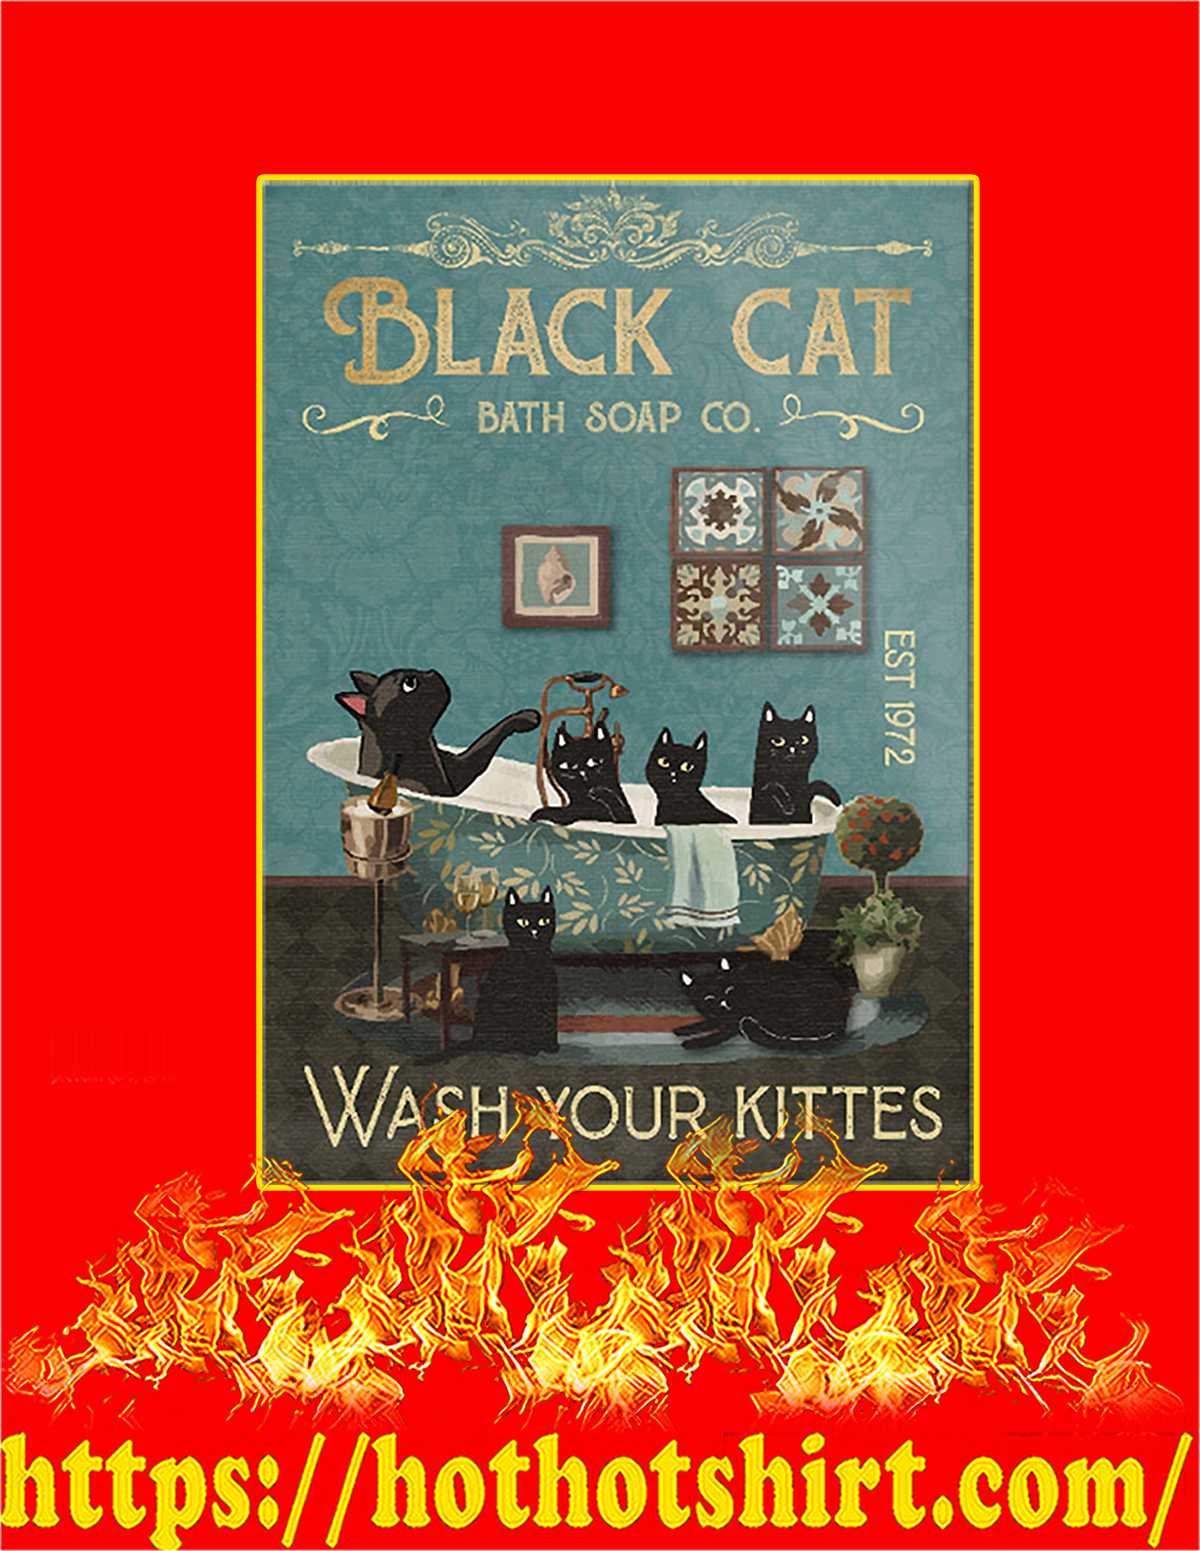 Black cat bath soap co wash your kittes poster - A4